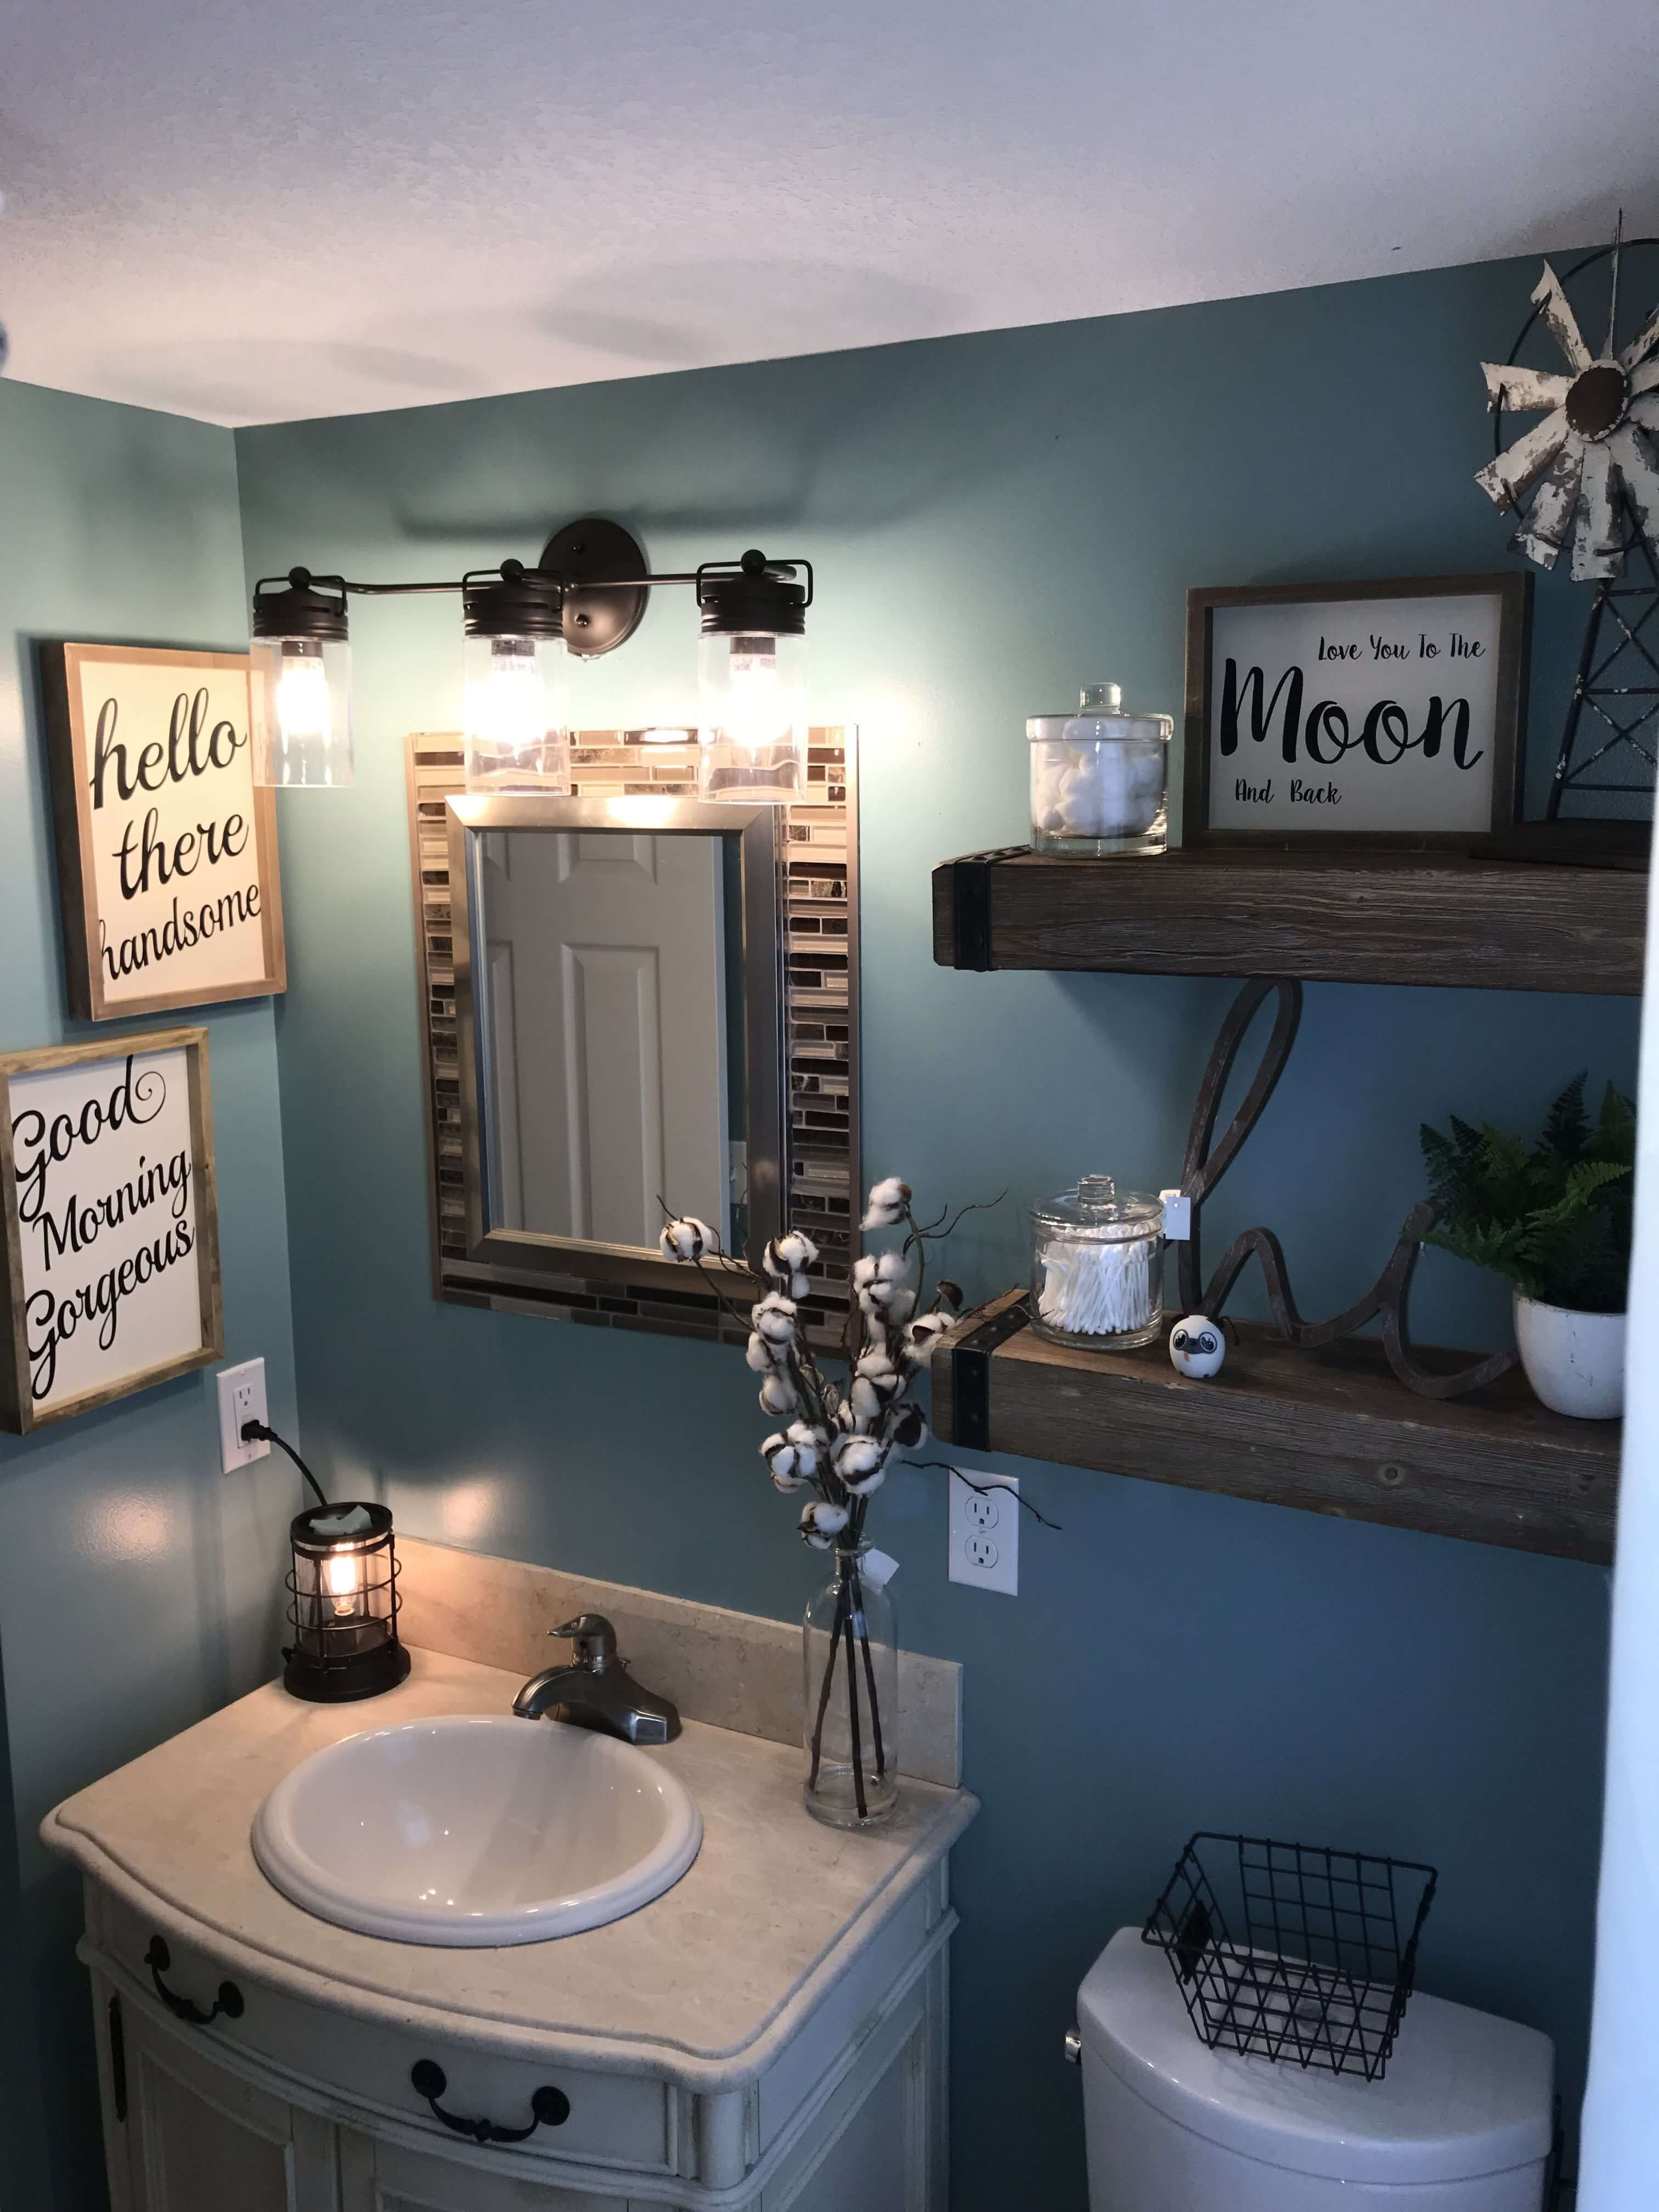 Top 12 Best Bathroom Wall Decor Ideas To Check Out Small